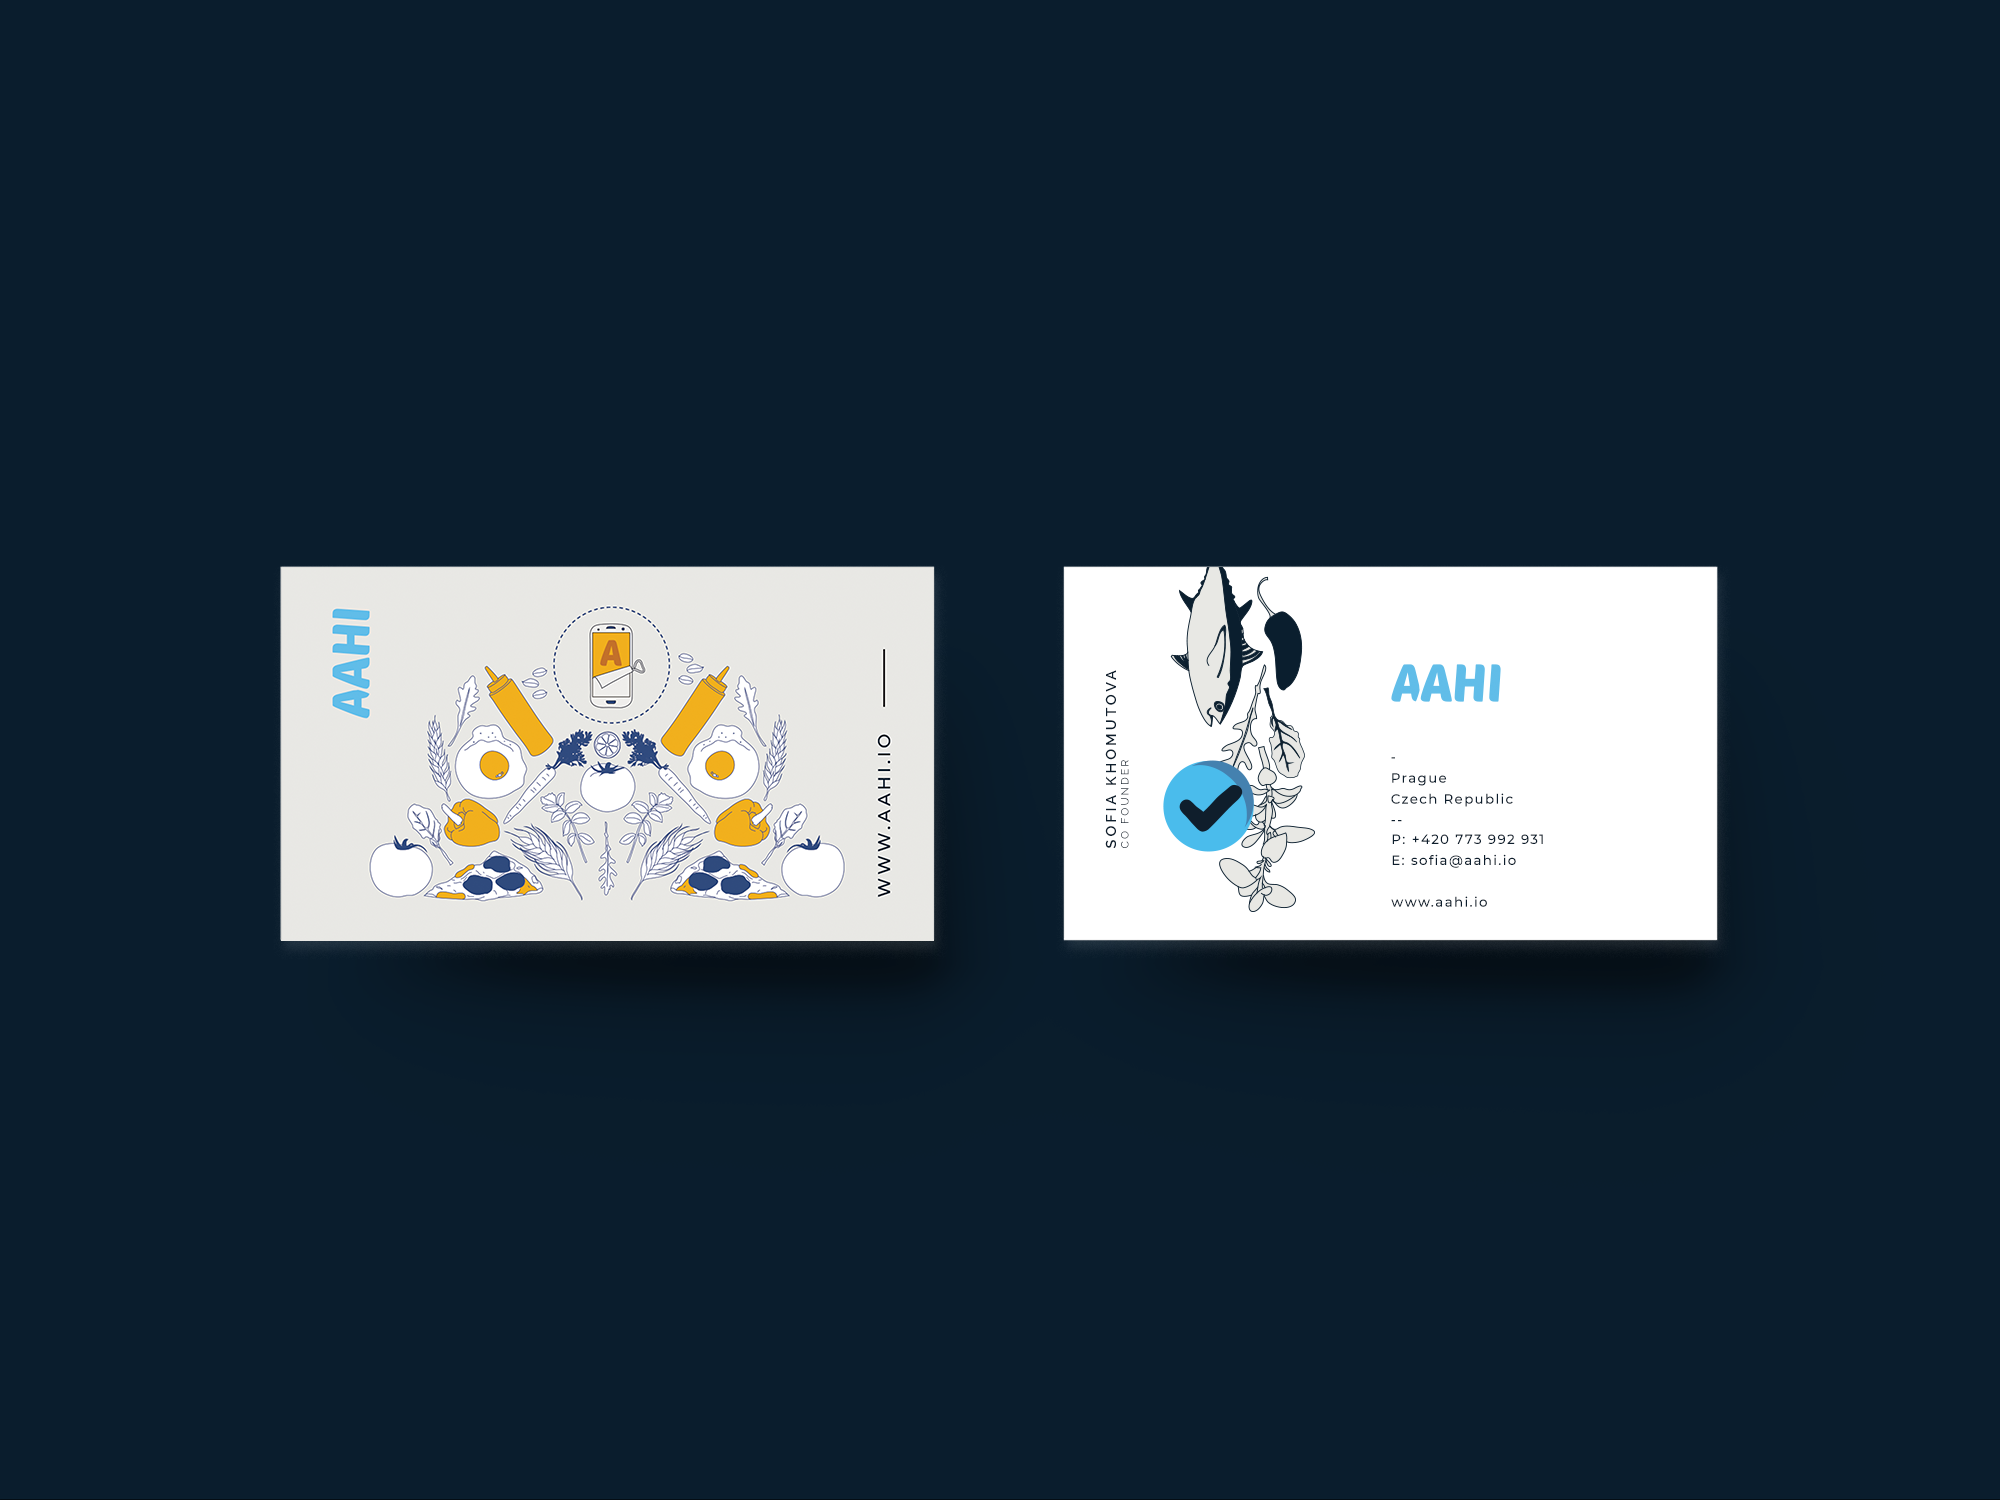 aahi app design, business cards, graphic design